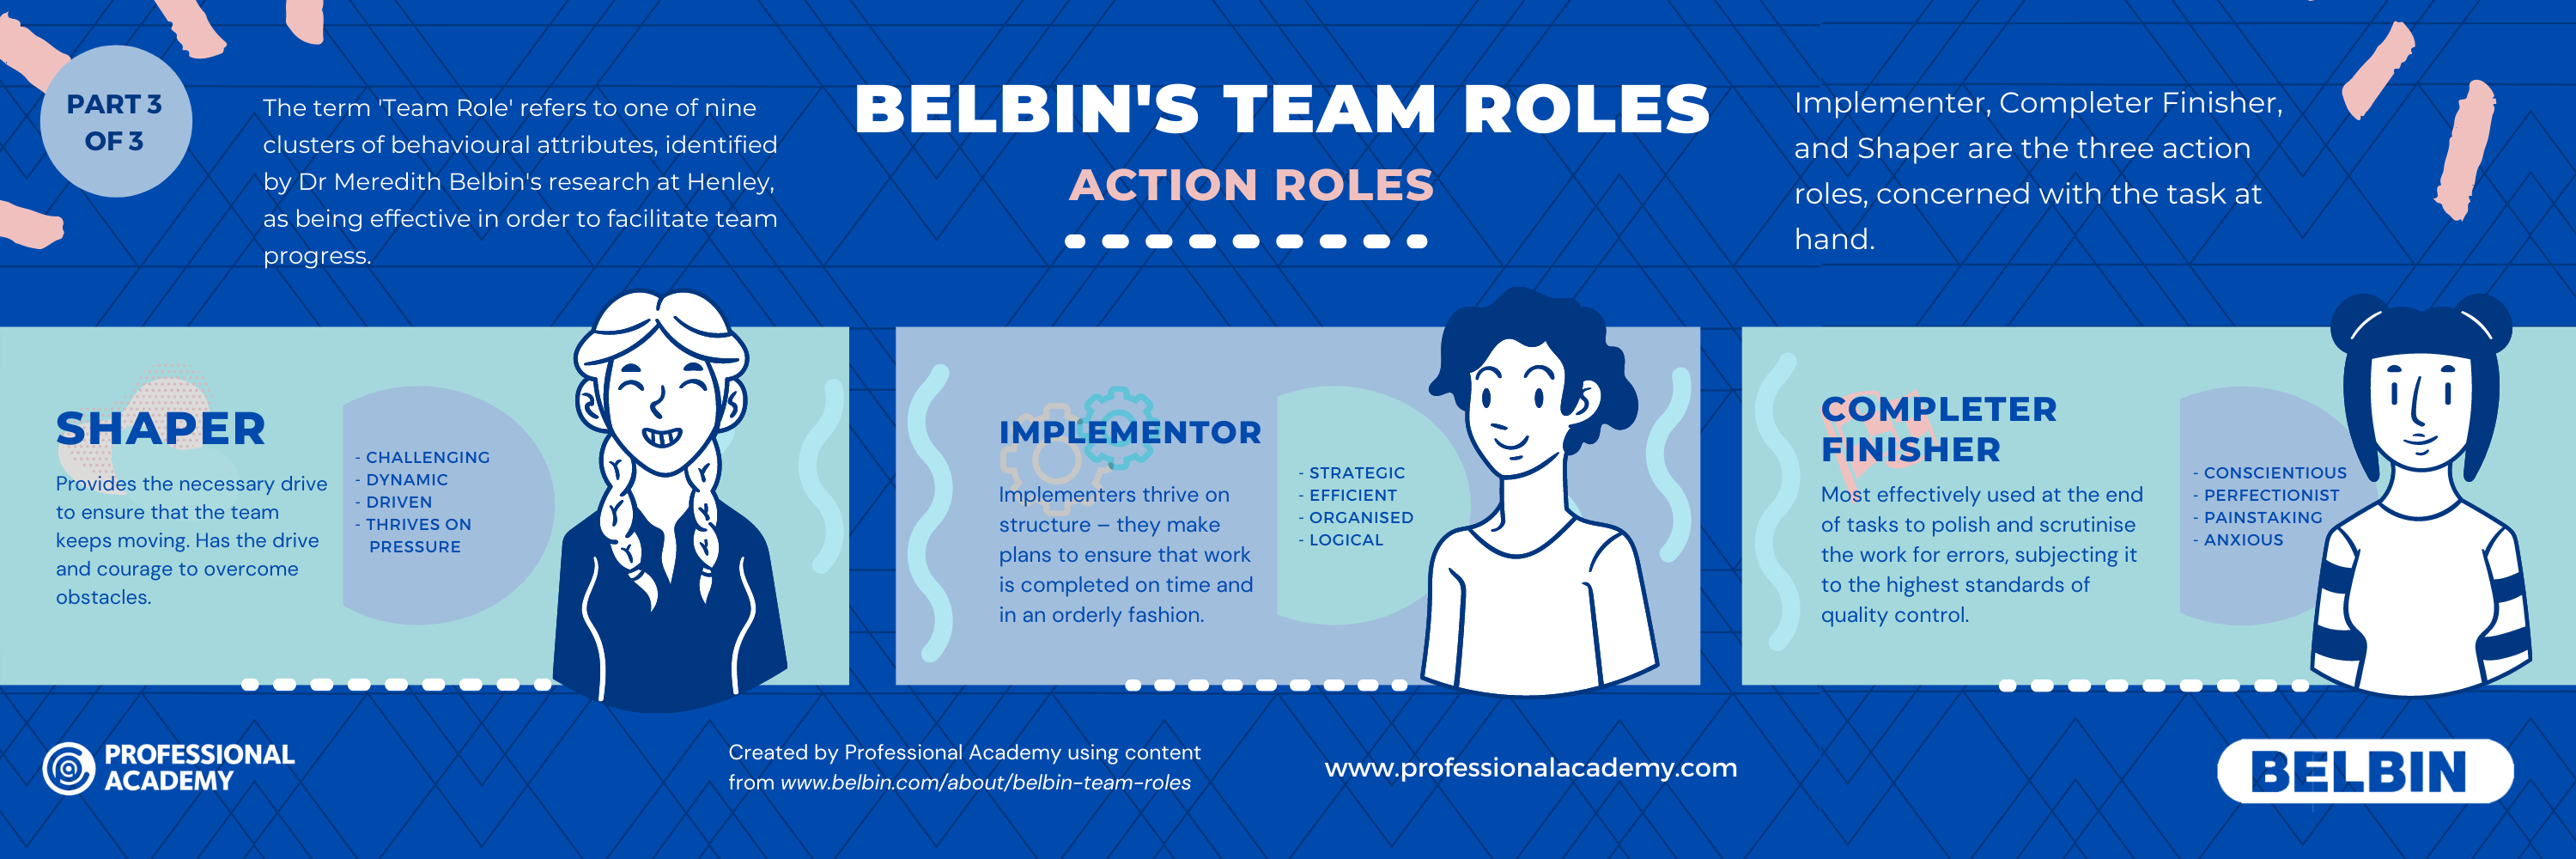 Belbins Theory team roles infographic